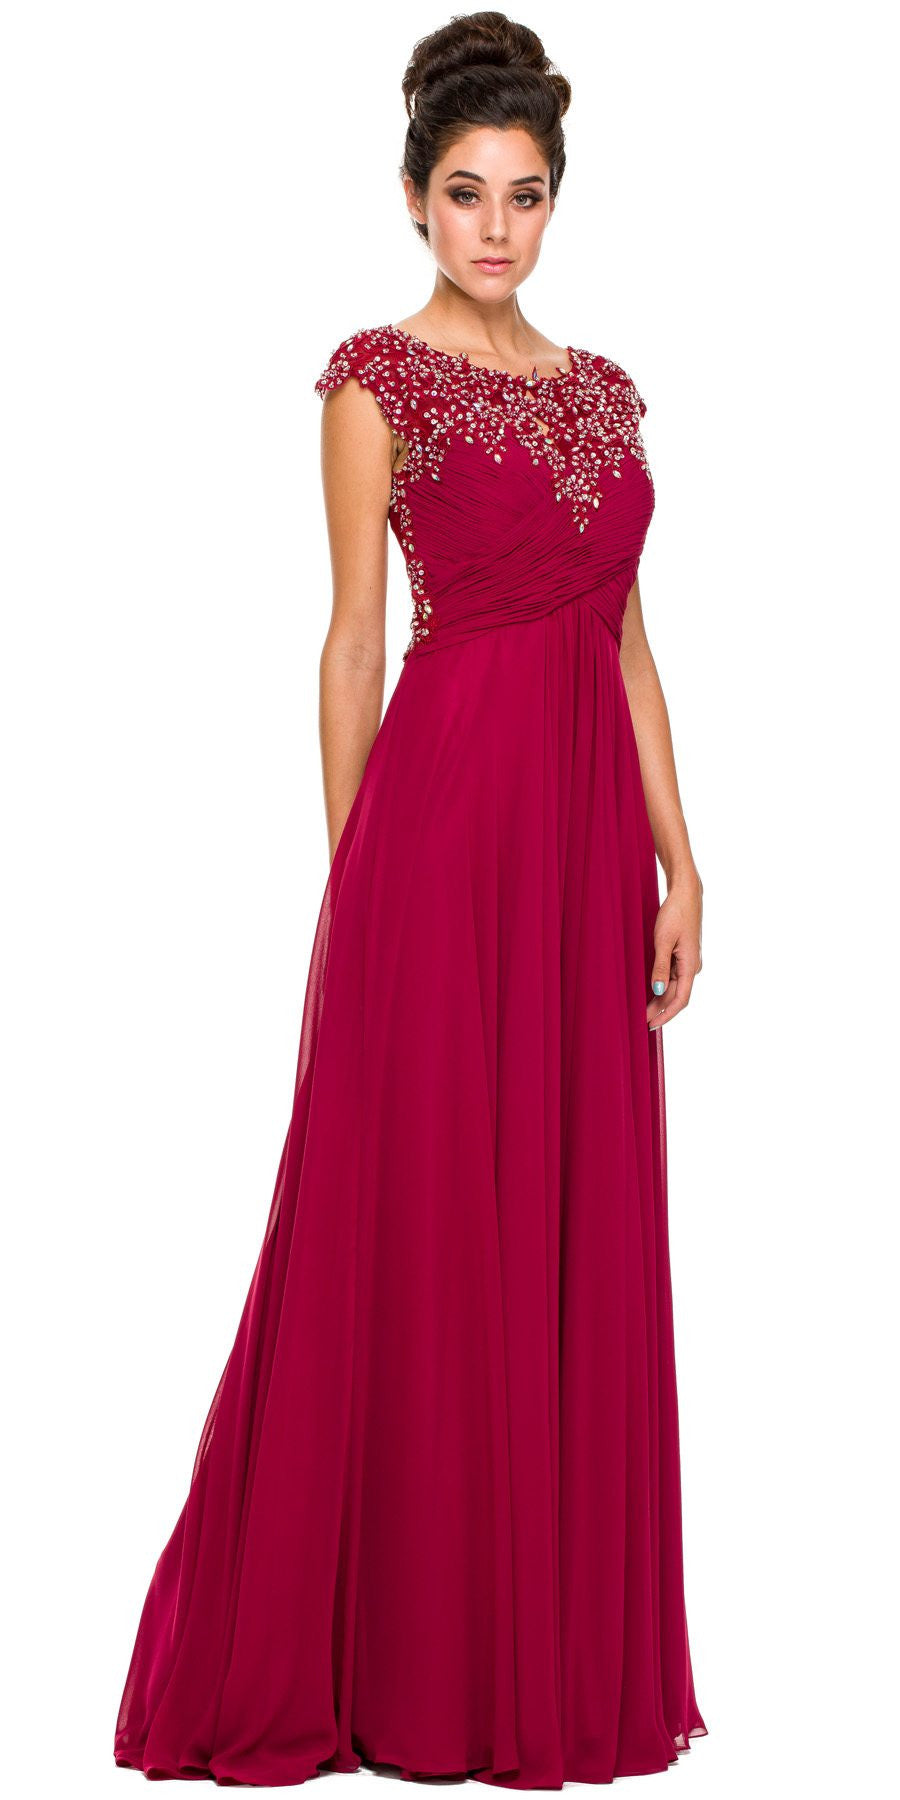 Plus Size Dusty Rose Formal Gown Cap Sleeve Empire Waist Full Length ...